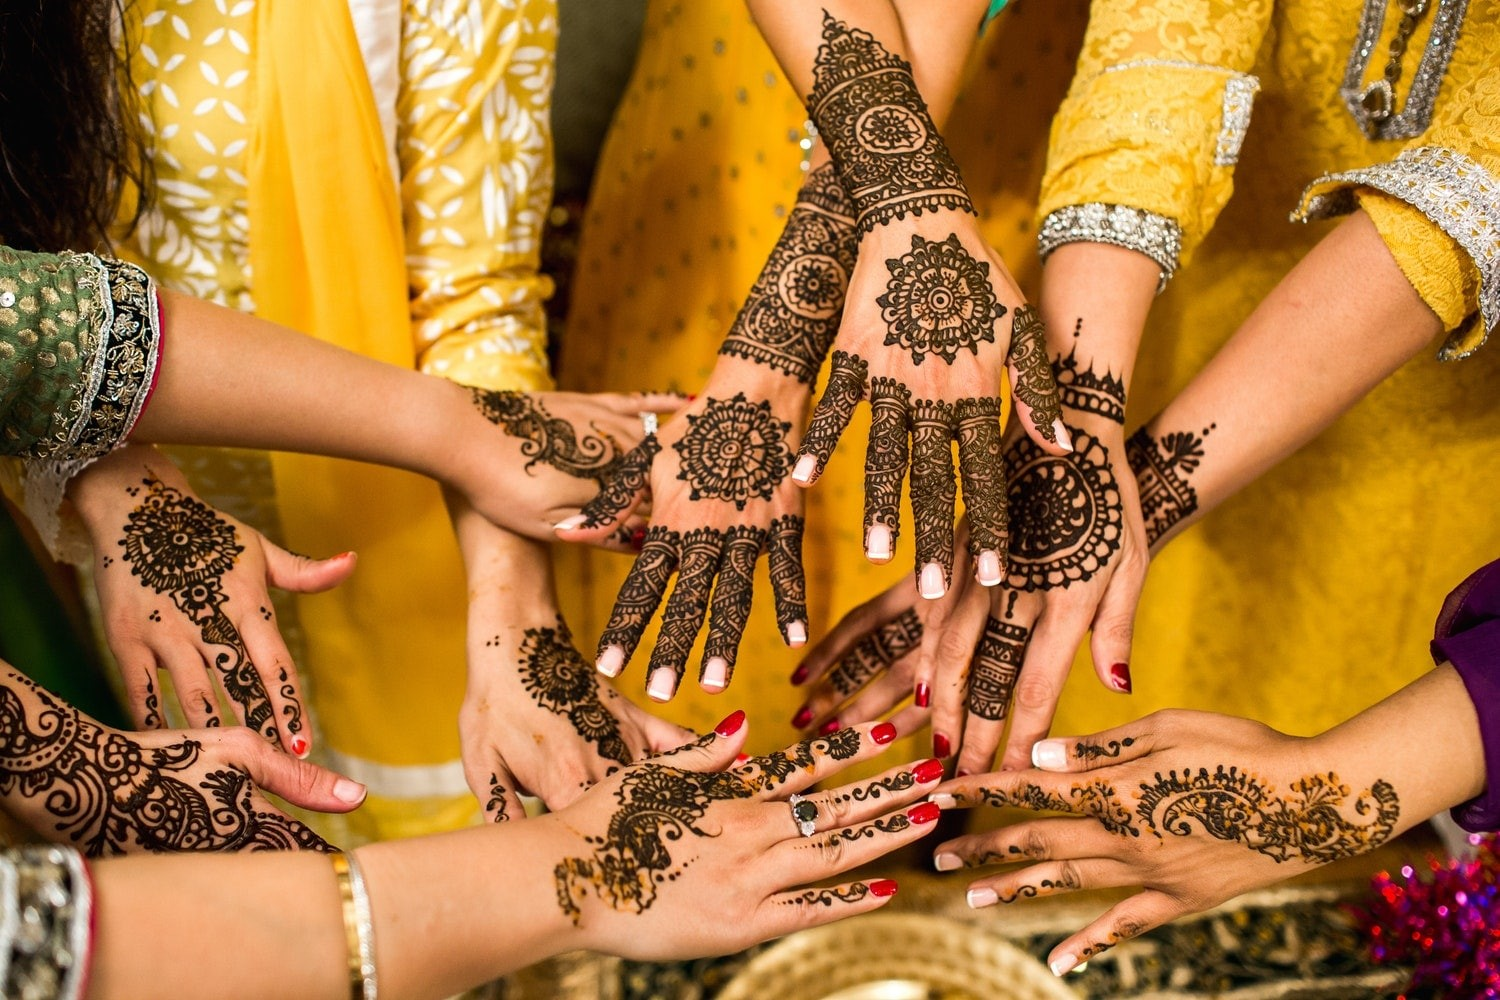 a group of woman's hand, each with henna stain tattoo.